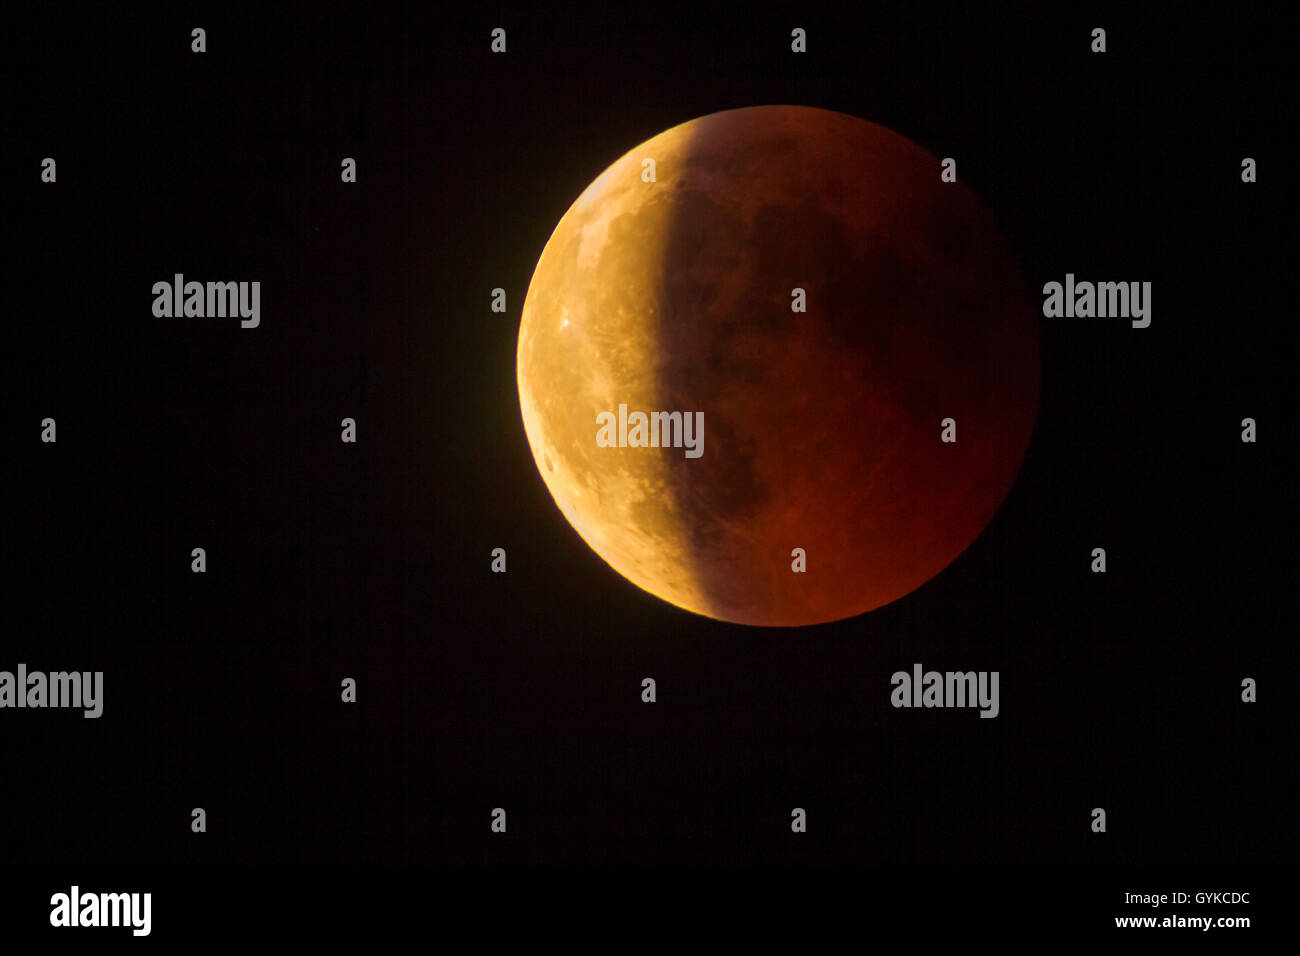 blood moon eclipse germany - photo #9